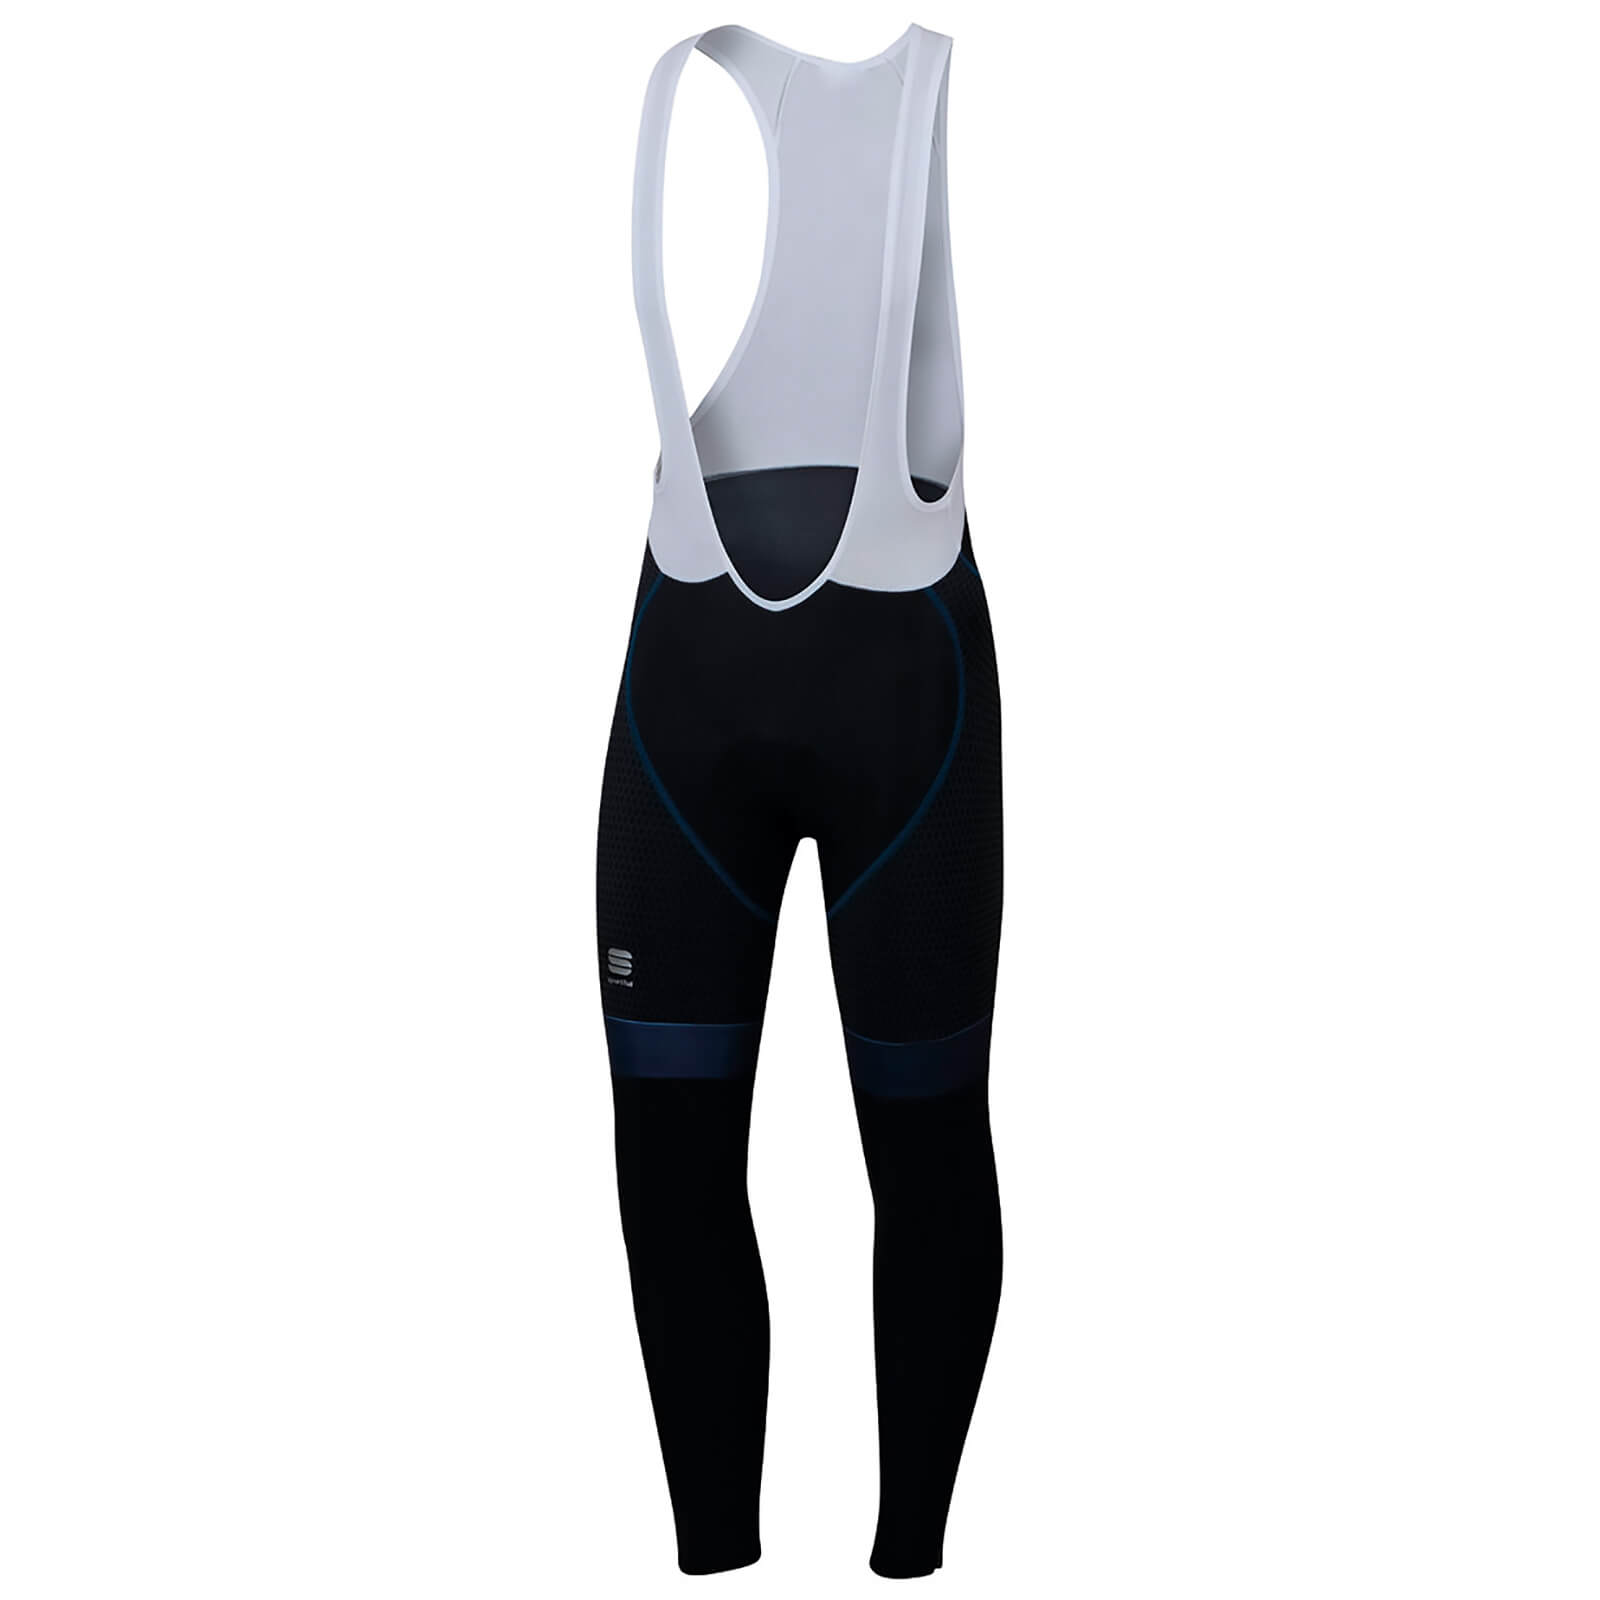 Sportful BodyFit Pro Bib Tights - Black/Black Iris